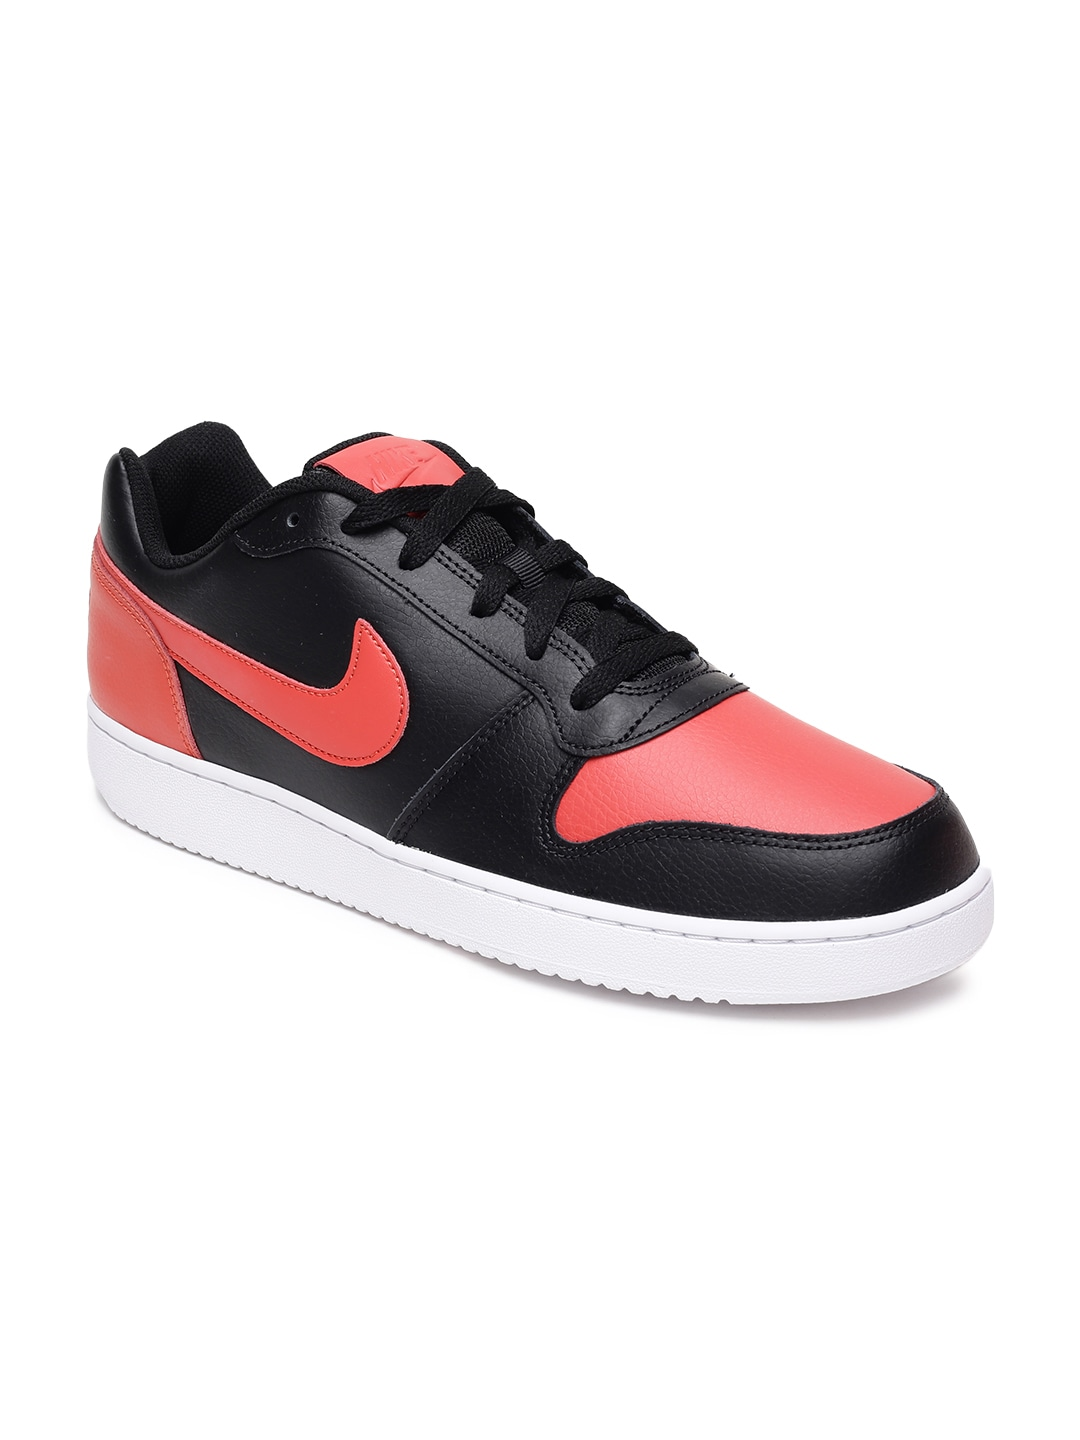 detailed look 7c9f4 d89b0 Nike Casual Shoes   Buy Nike Casual Shoes for Men   Women Online in India